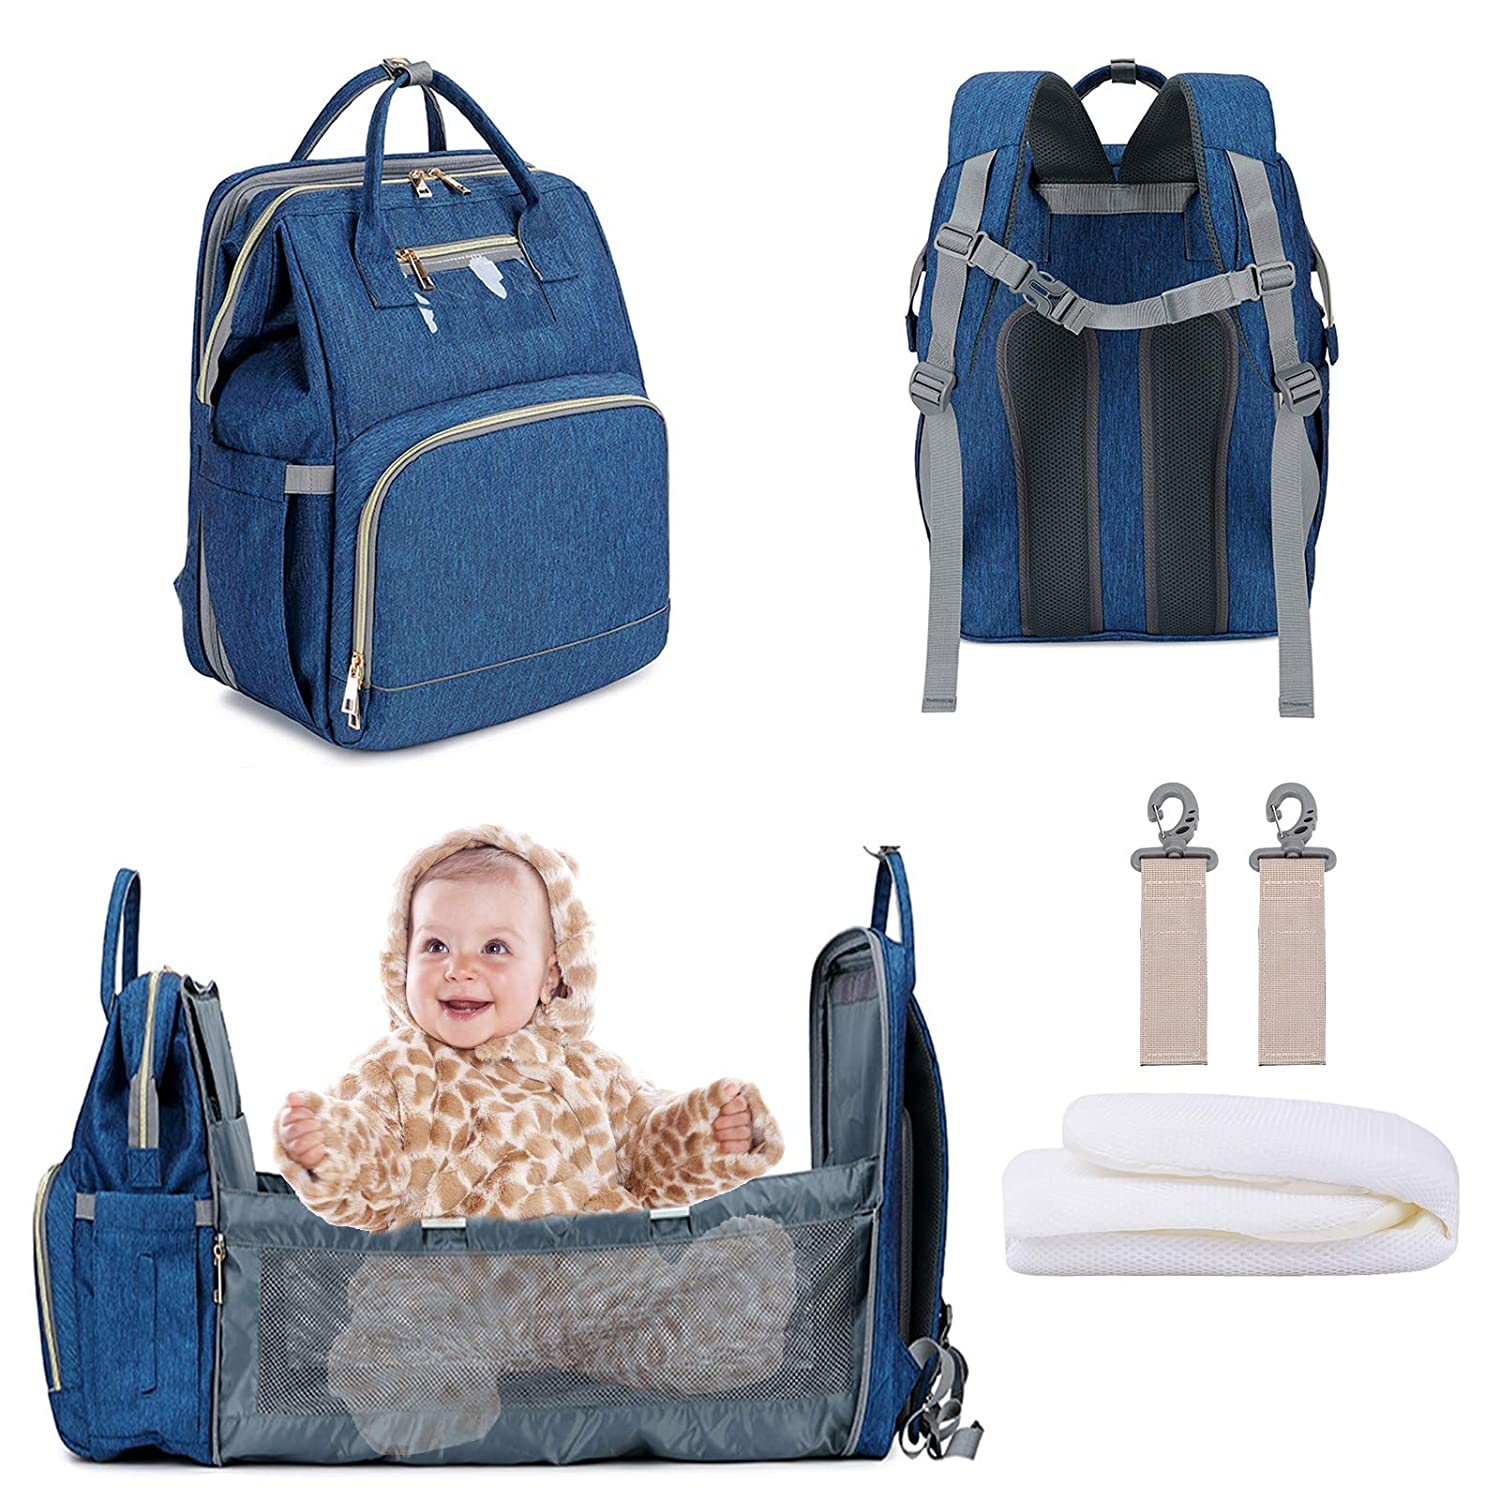 3 in 1 Diaper Backpack with USB Charge Port, Multifunctional Nappy Bag Foldable Baby Bed Travel Bassinet for Baby. Insulated Bottle Warmer Diaper Bag with Changing Station for Dad/Mom (Bag+Crib+USB)